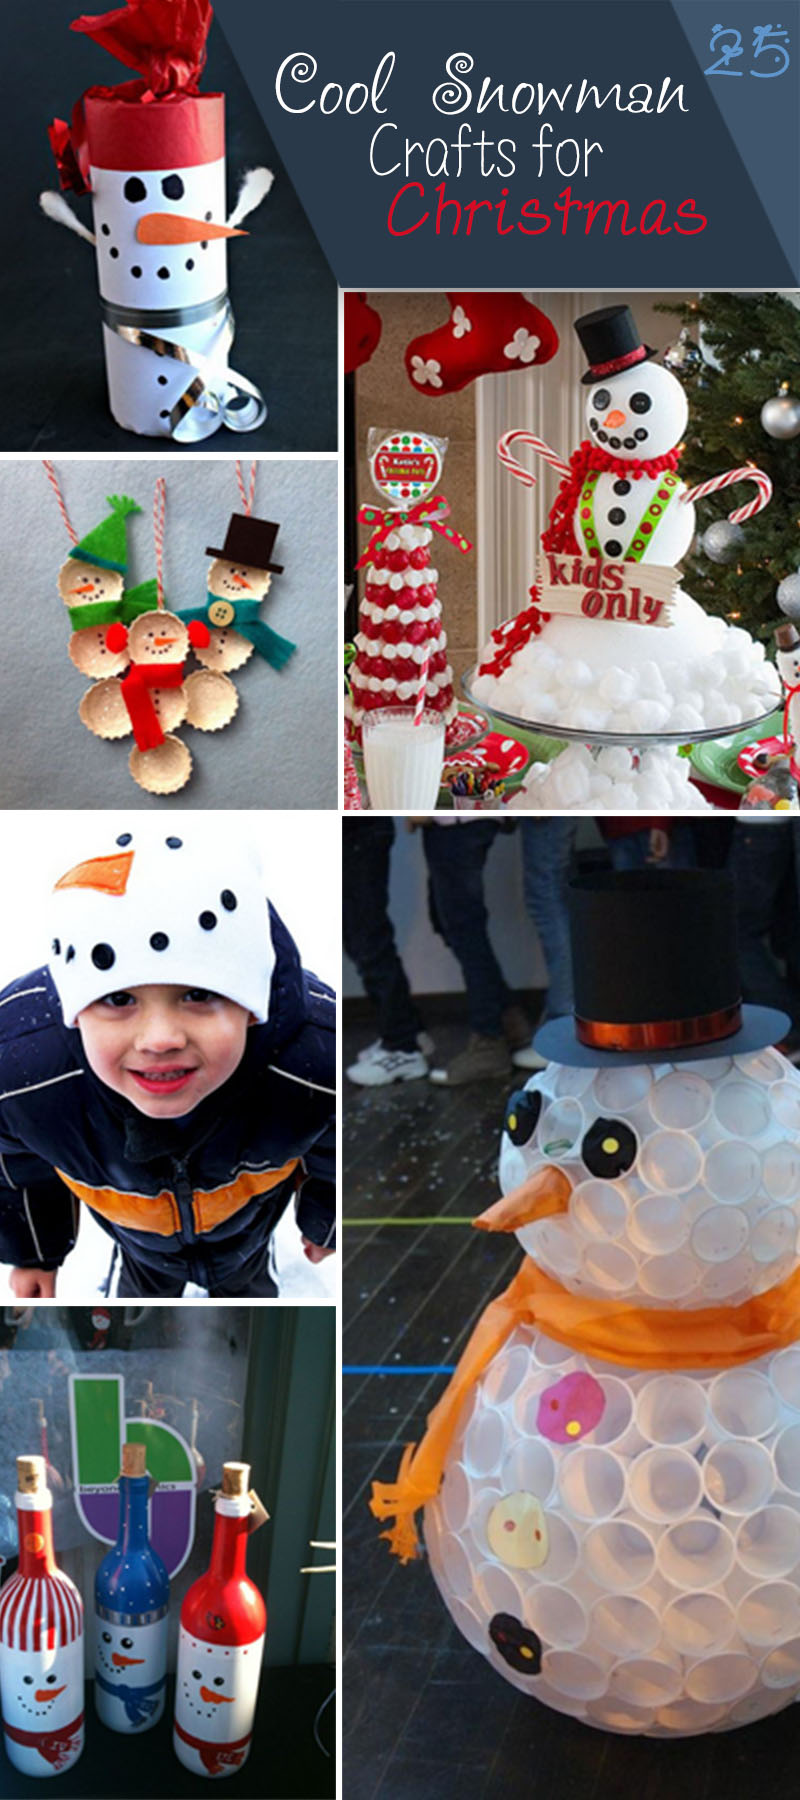 Cool Snowman Crafts for Christmas!